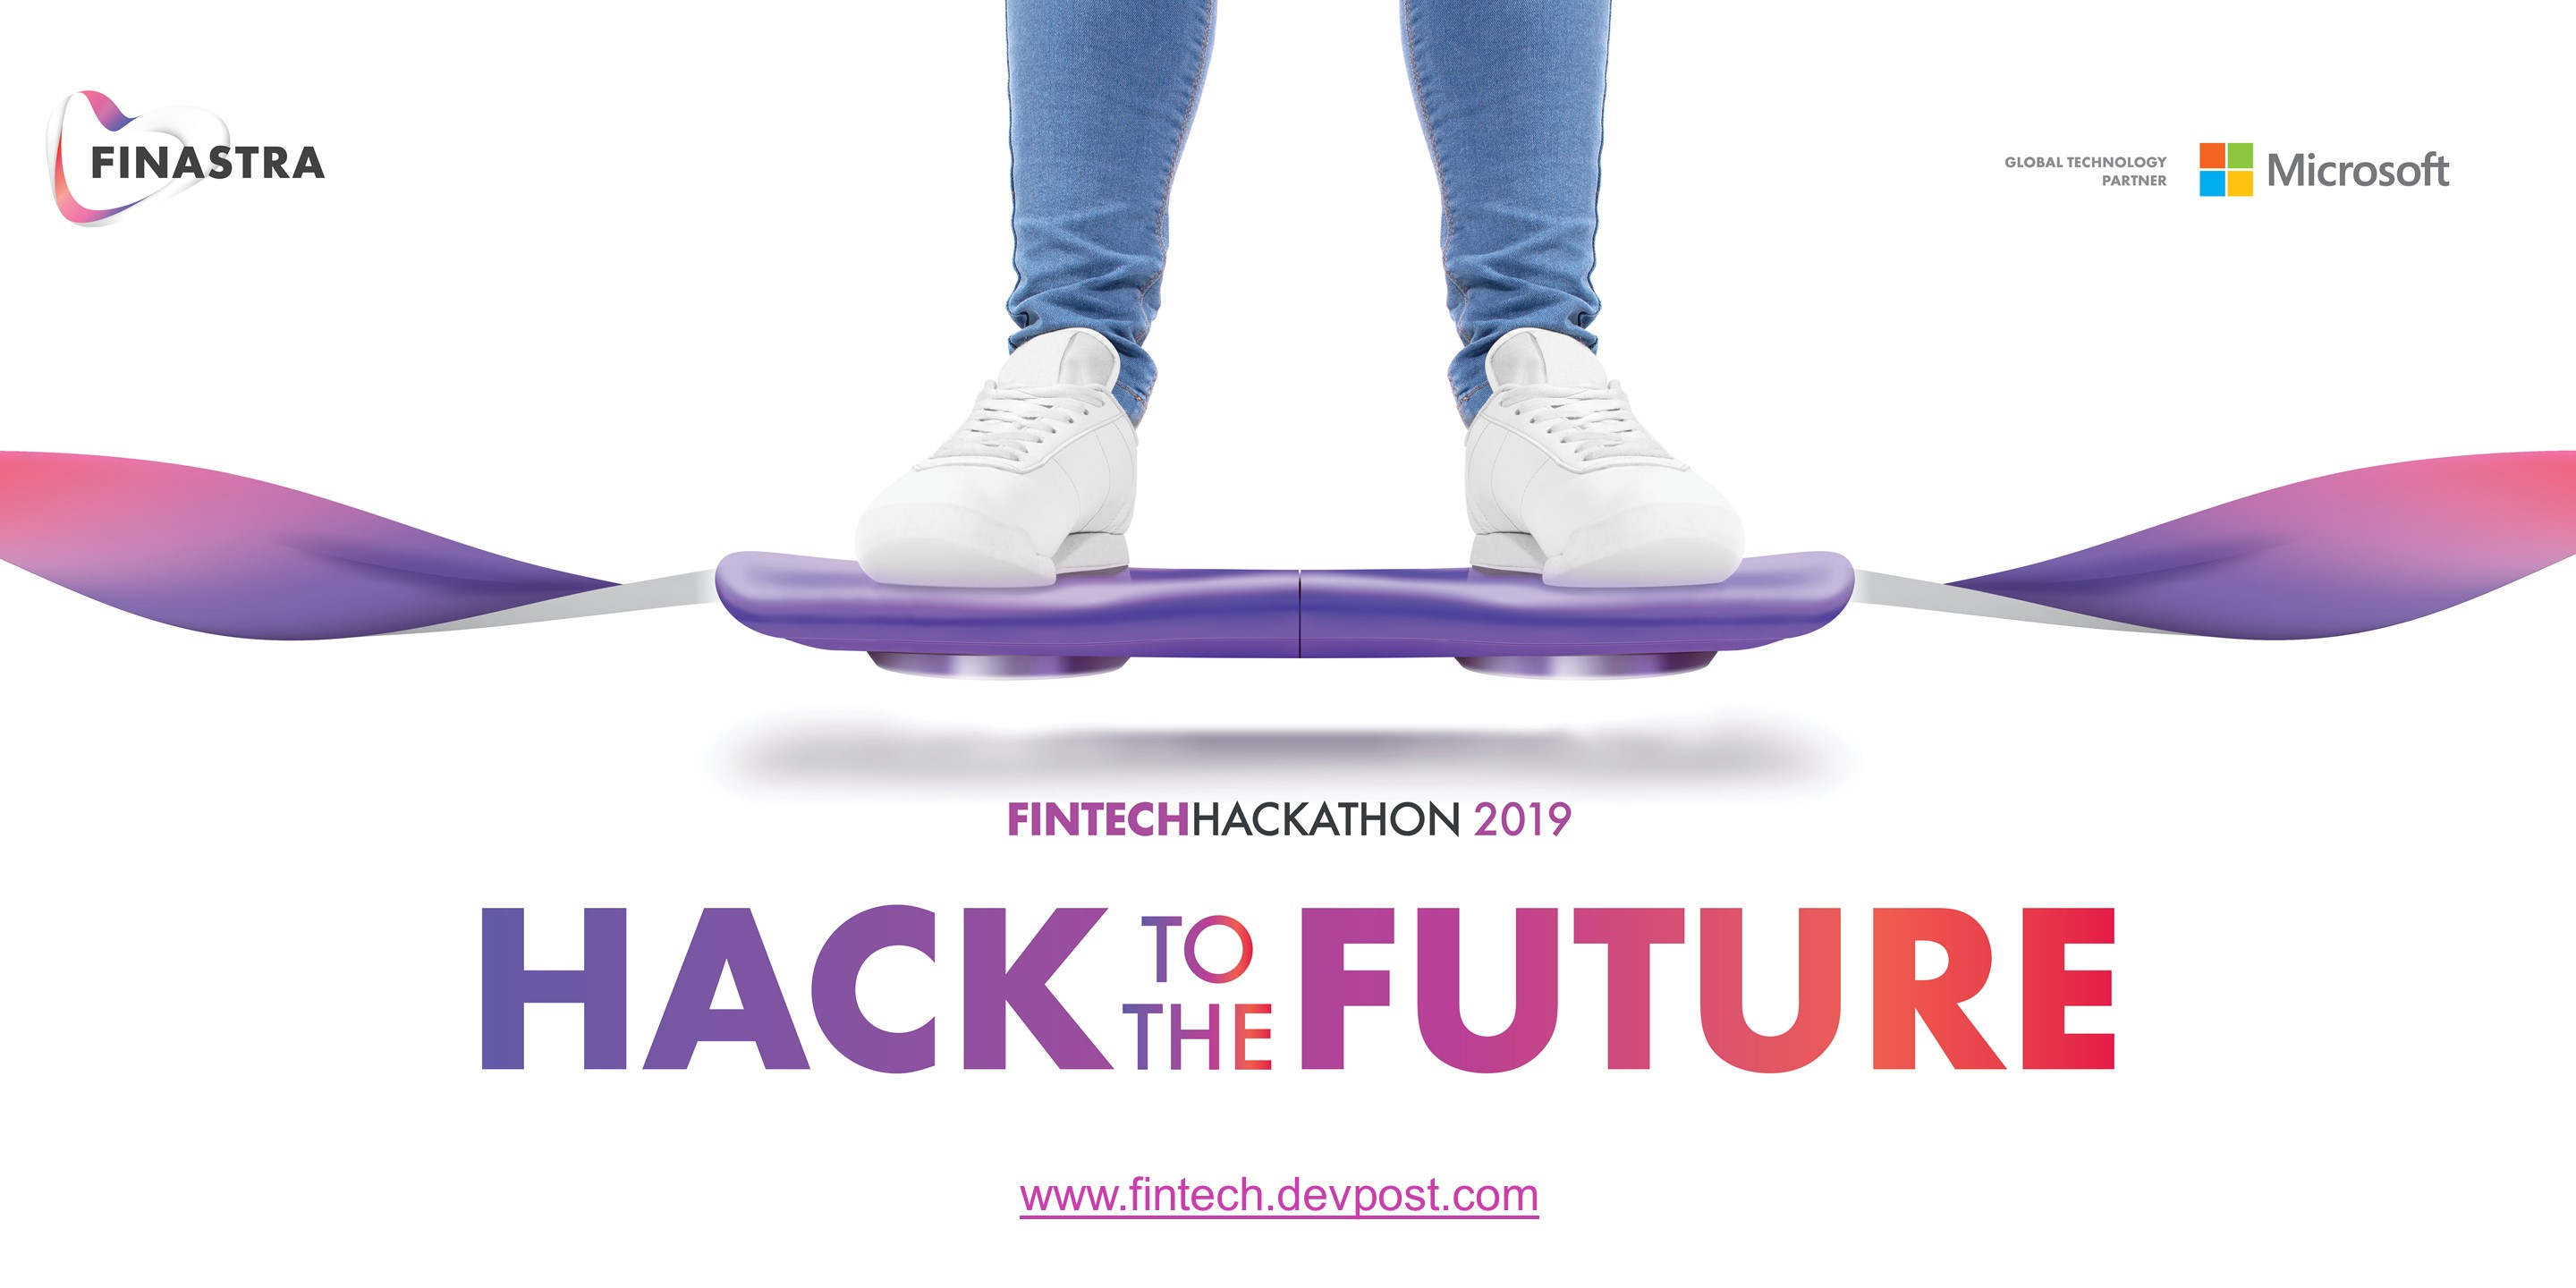 Finastra launches Hack to the Future